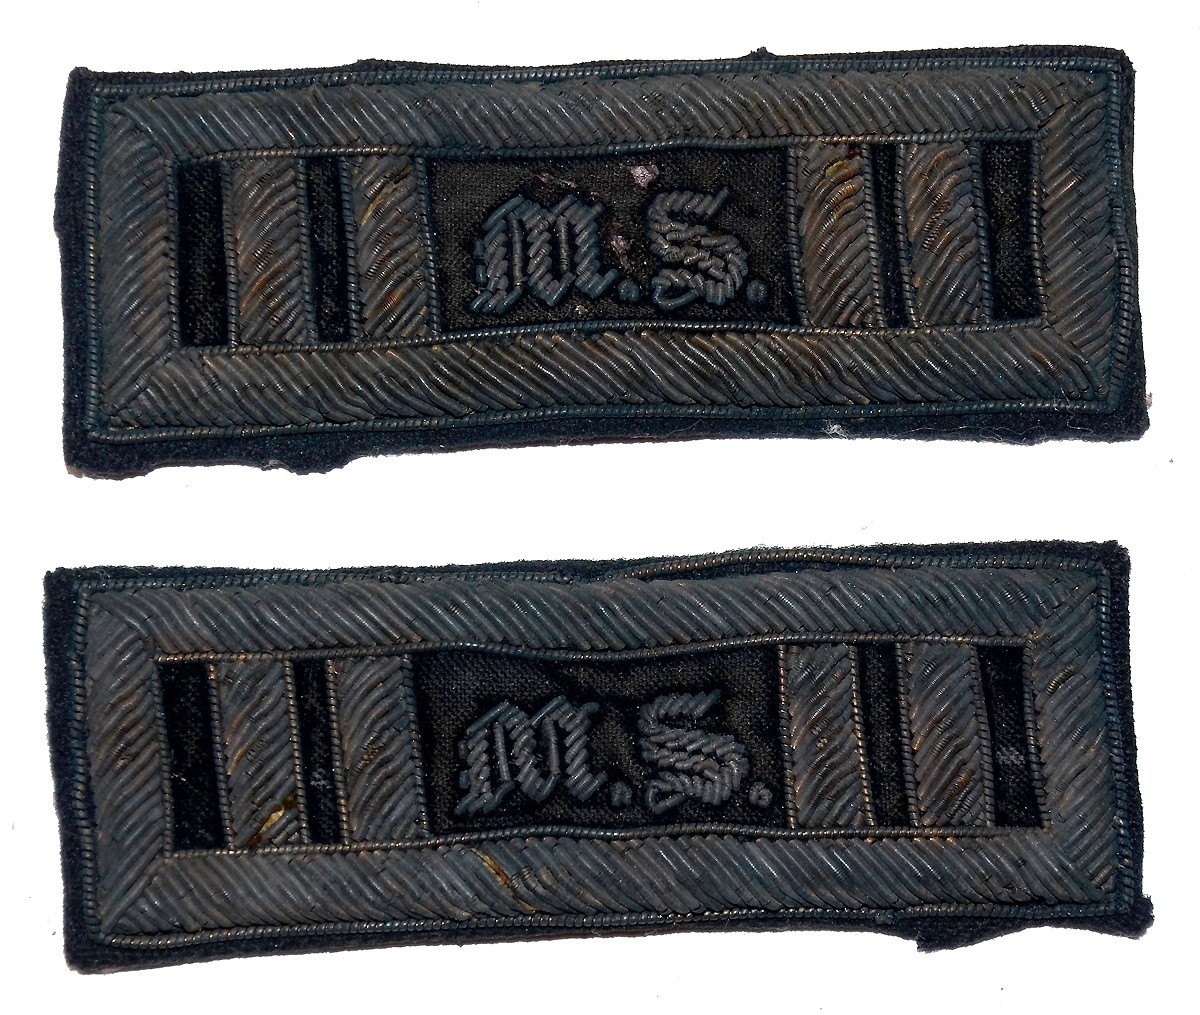 SCARCE MEDICAL STAFF CAPTAIN'S SHOULDER STRAPS